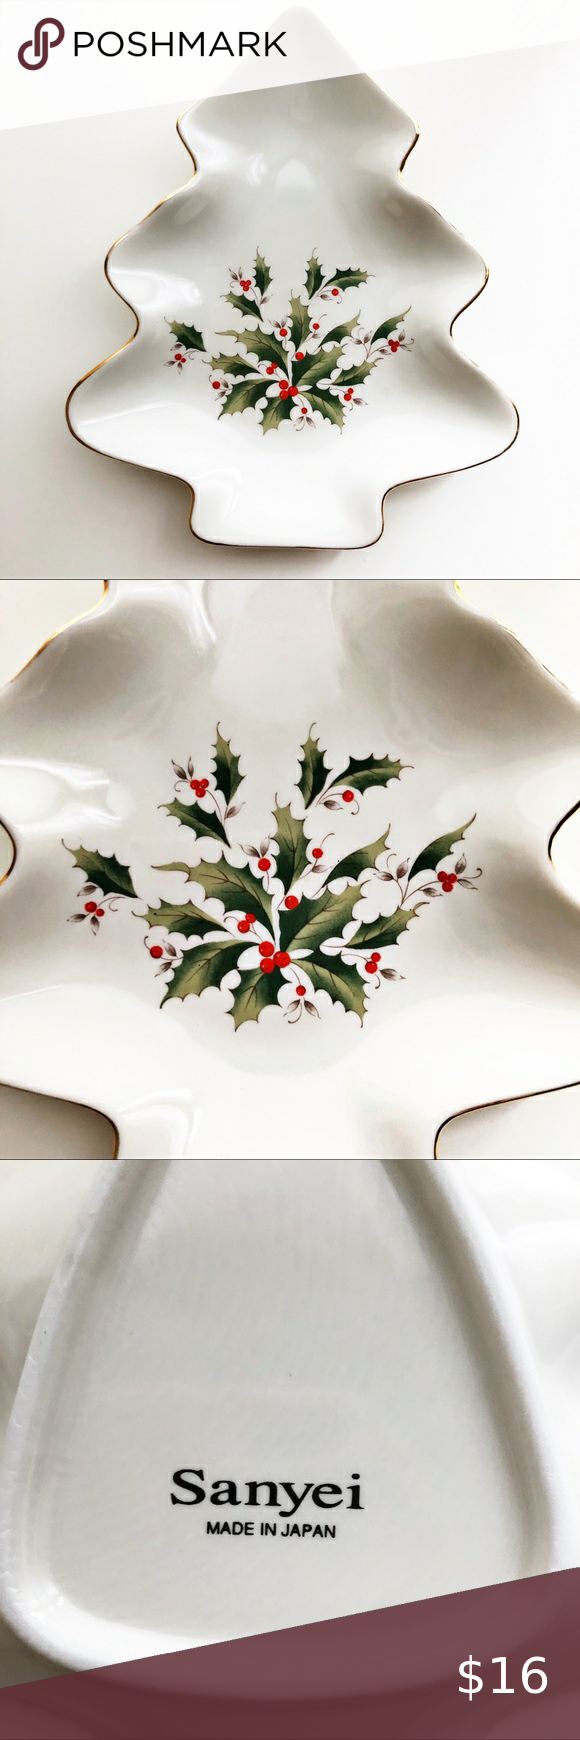 2020 Best Holly For Small Christmas Tree Sanyei Japan Vintage Porcelain Holly Berry Dish in 2020 | Vintage